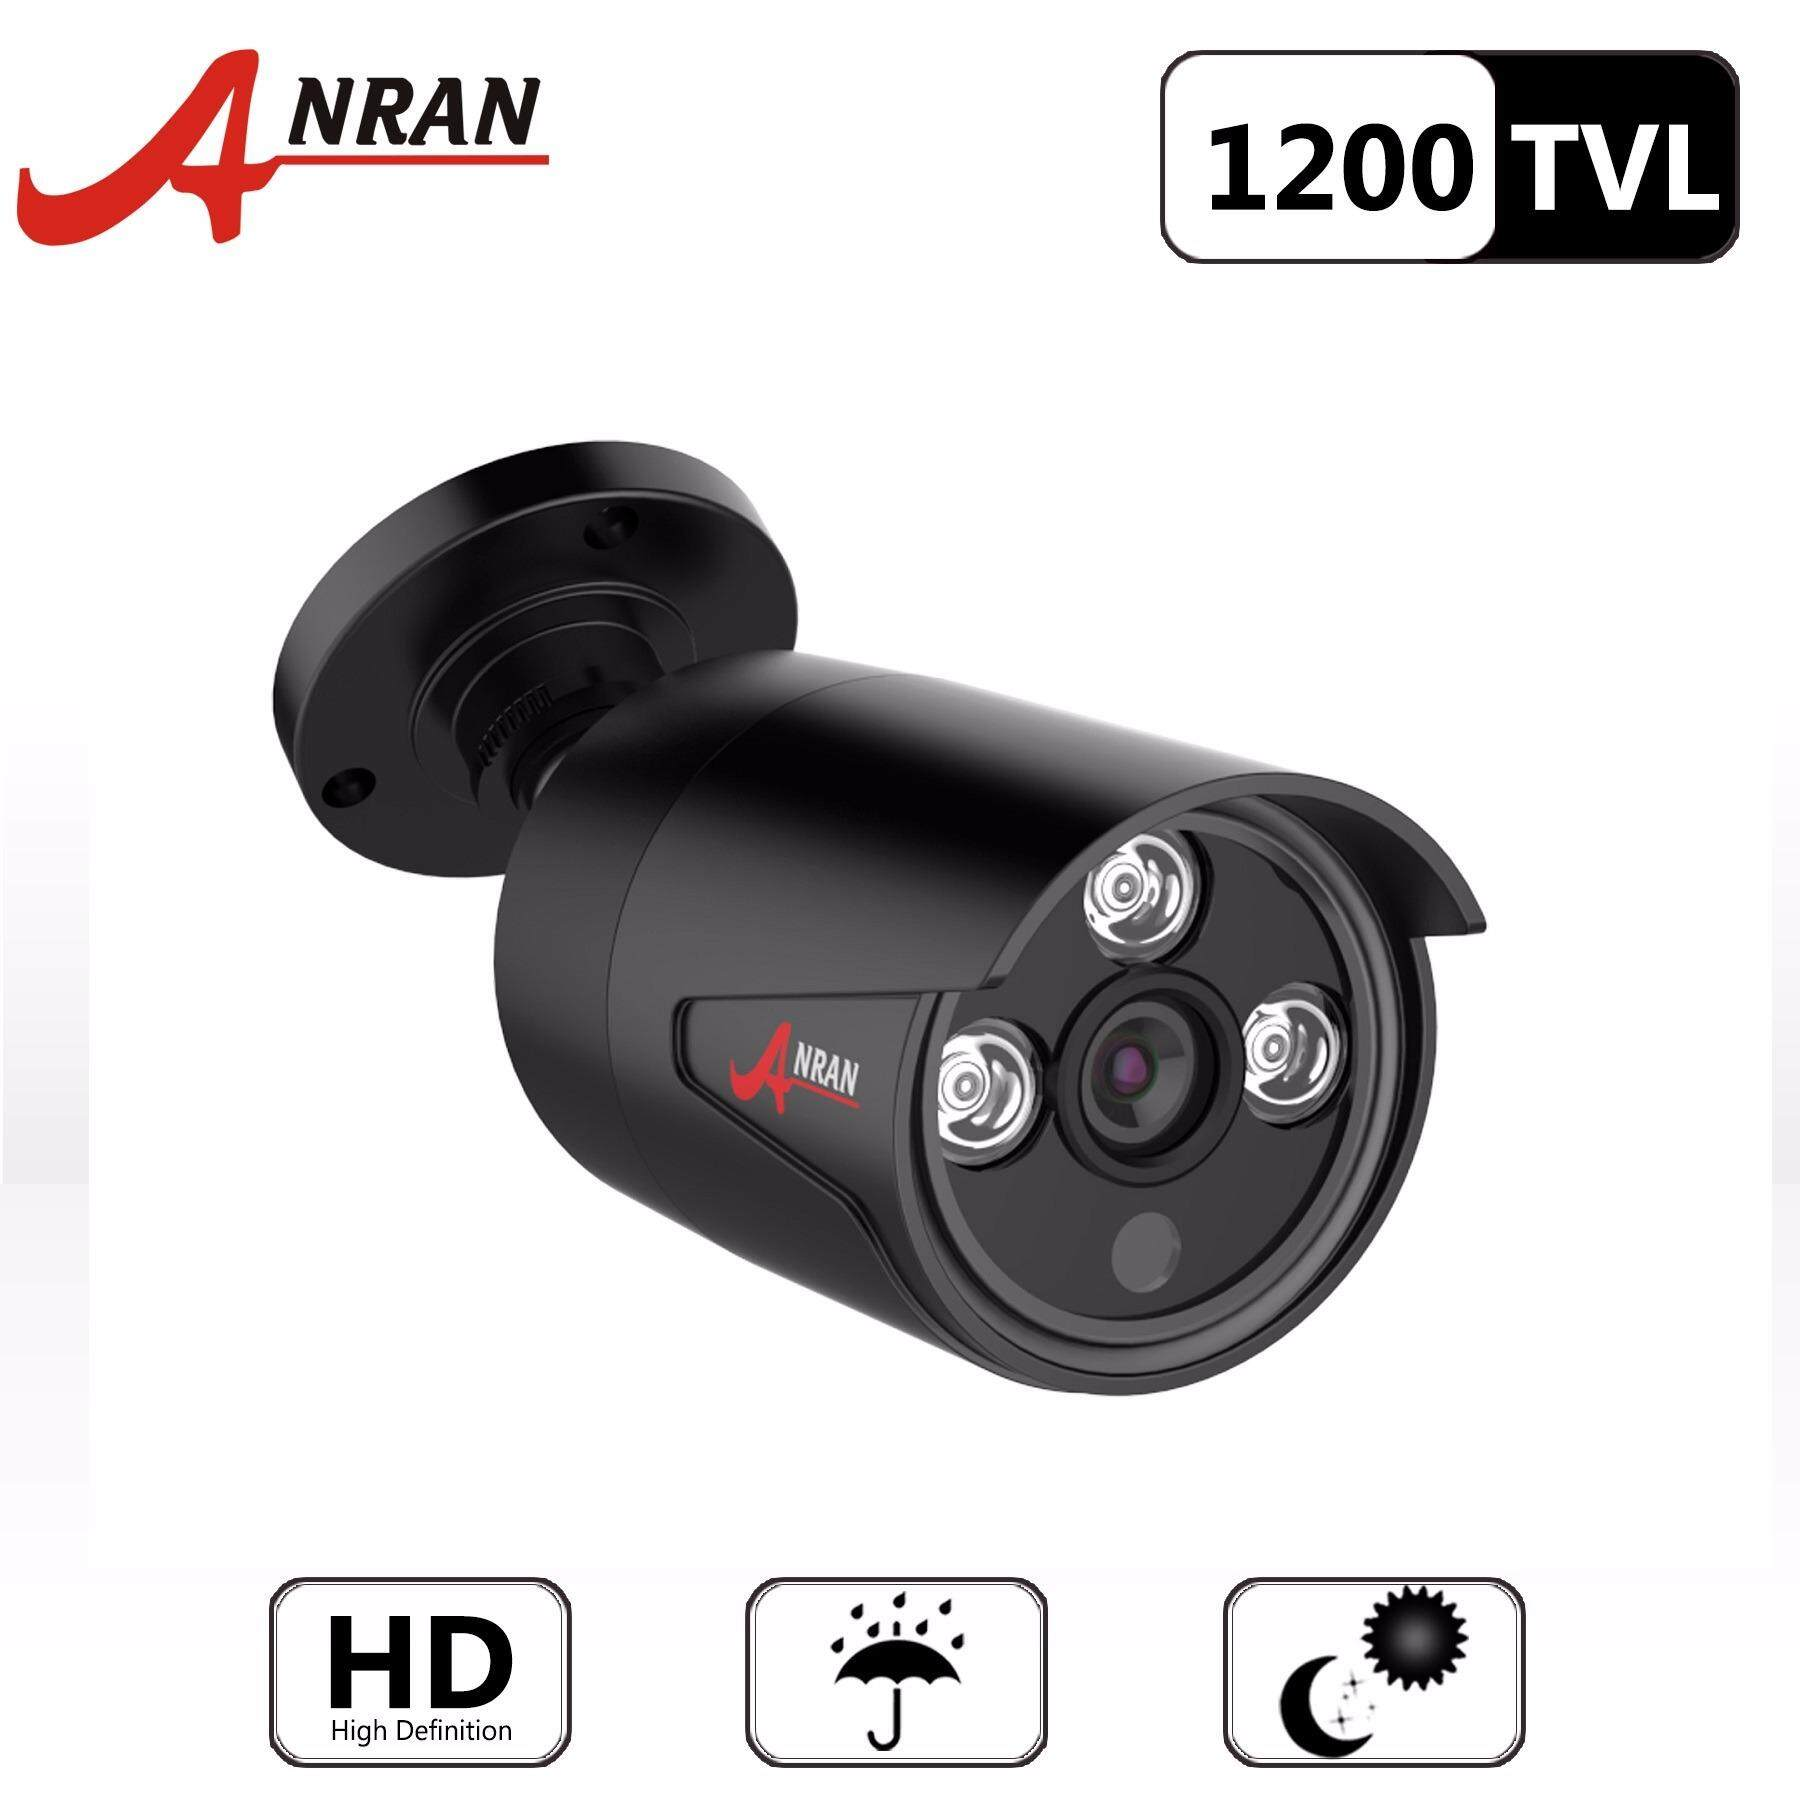 ราคา Anran Hd 1200Tvl Cmos Sensor Security Waterproof Outdoor Indoor Bullet Surveillance Cctv Camera ใหม่ล่าสุด